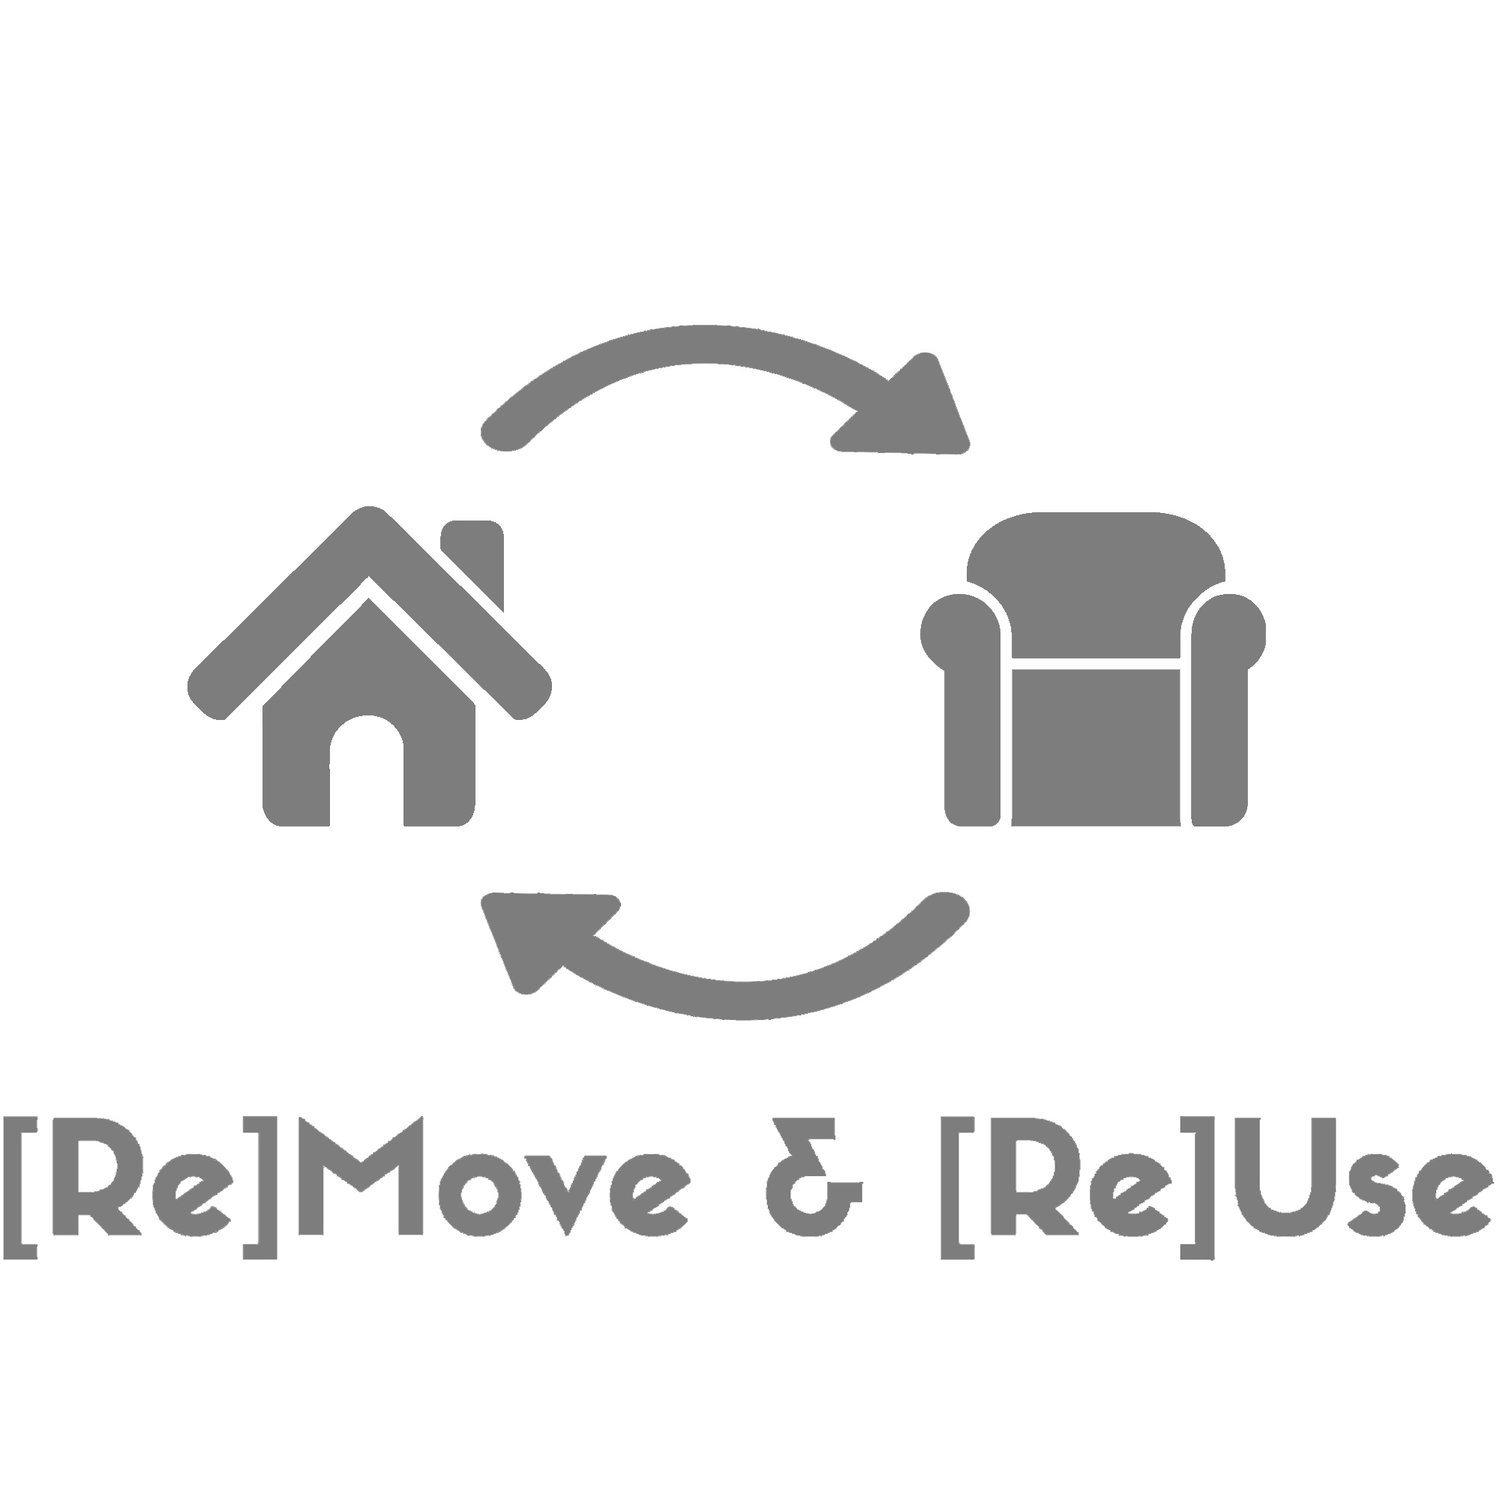 [Re]Move & [Re]Use